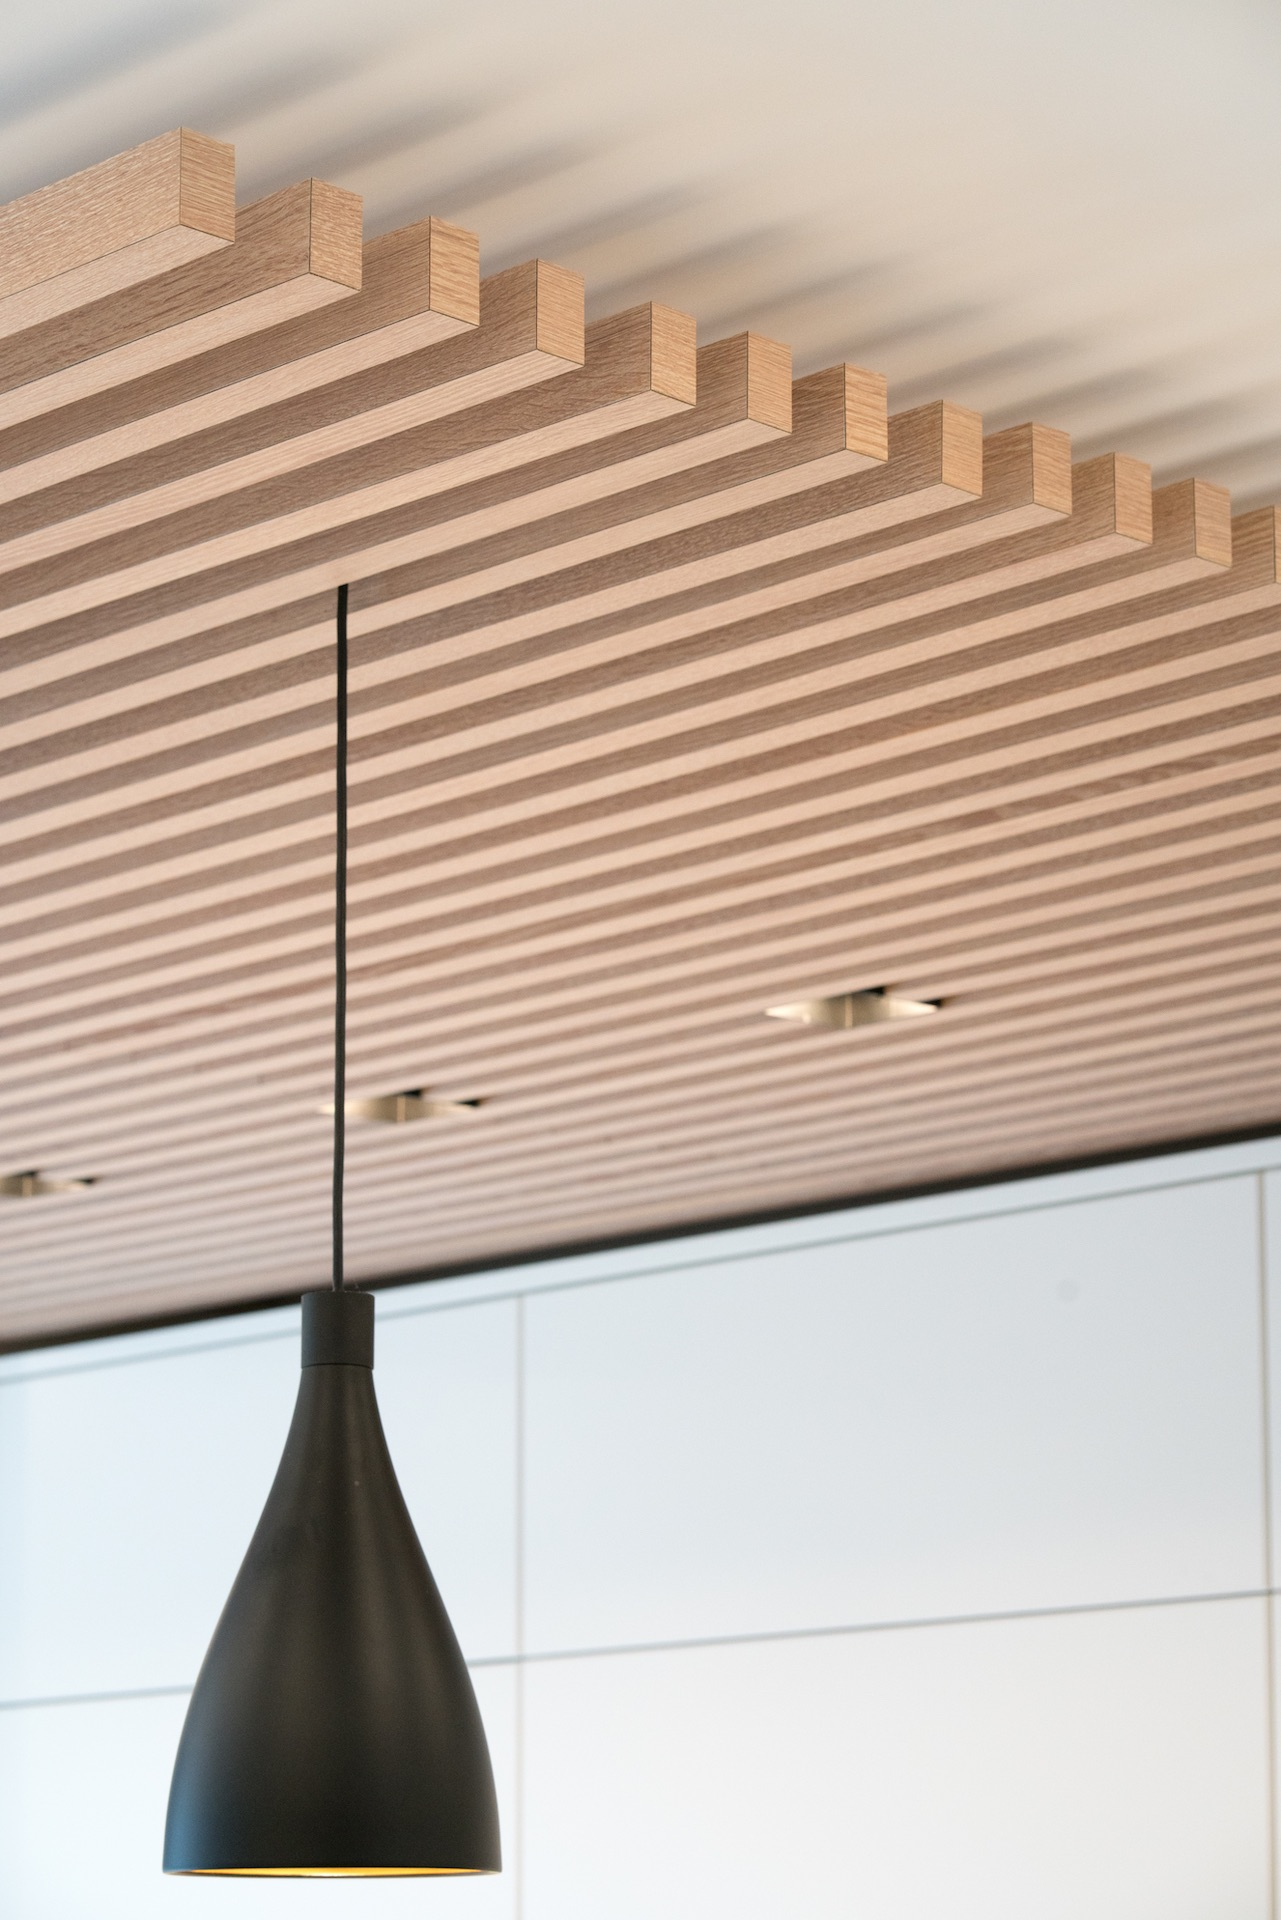 wood panels on ceiling